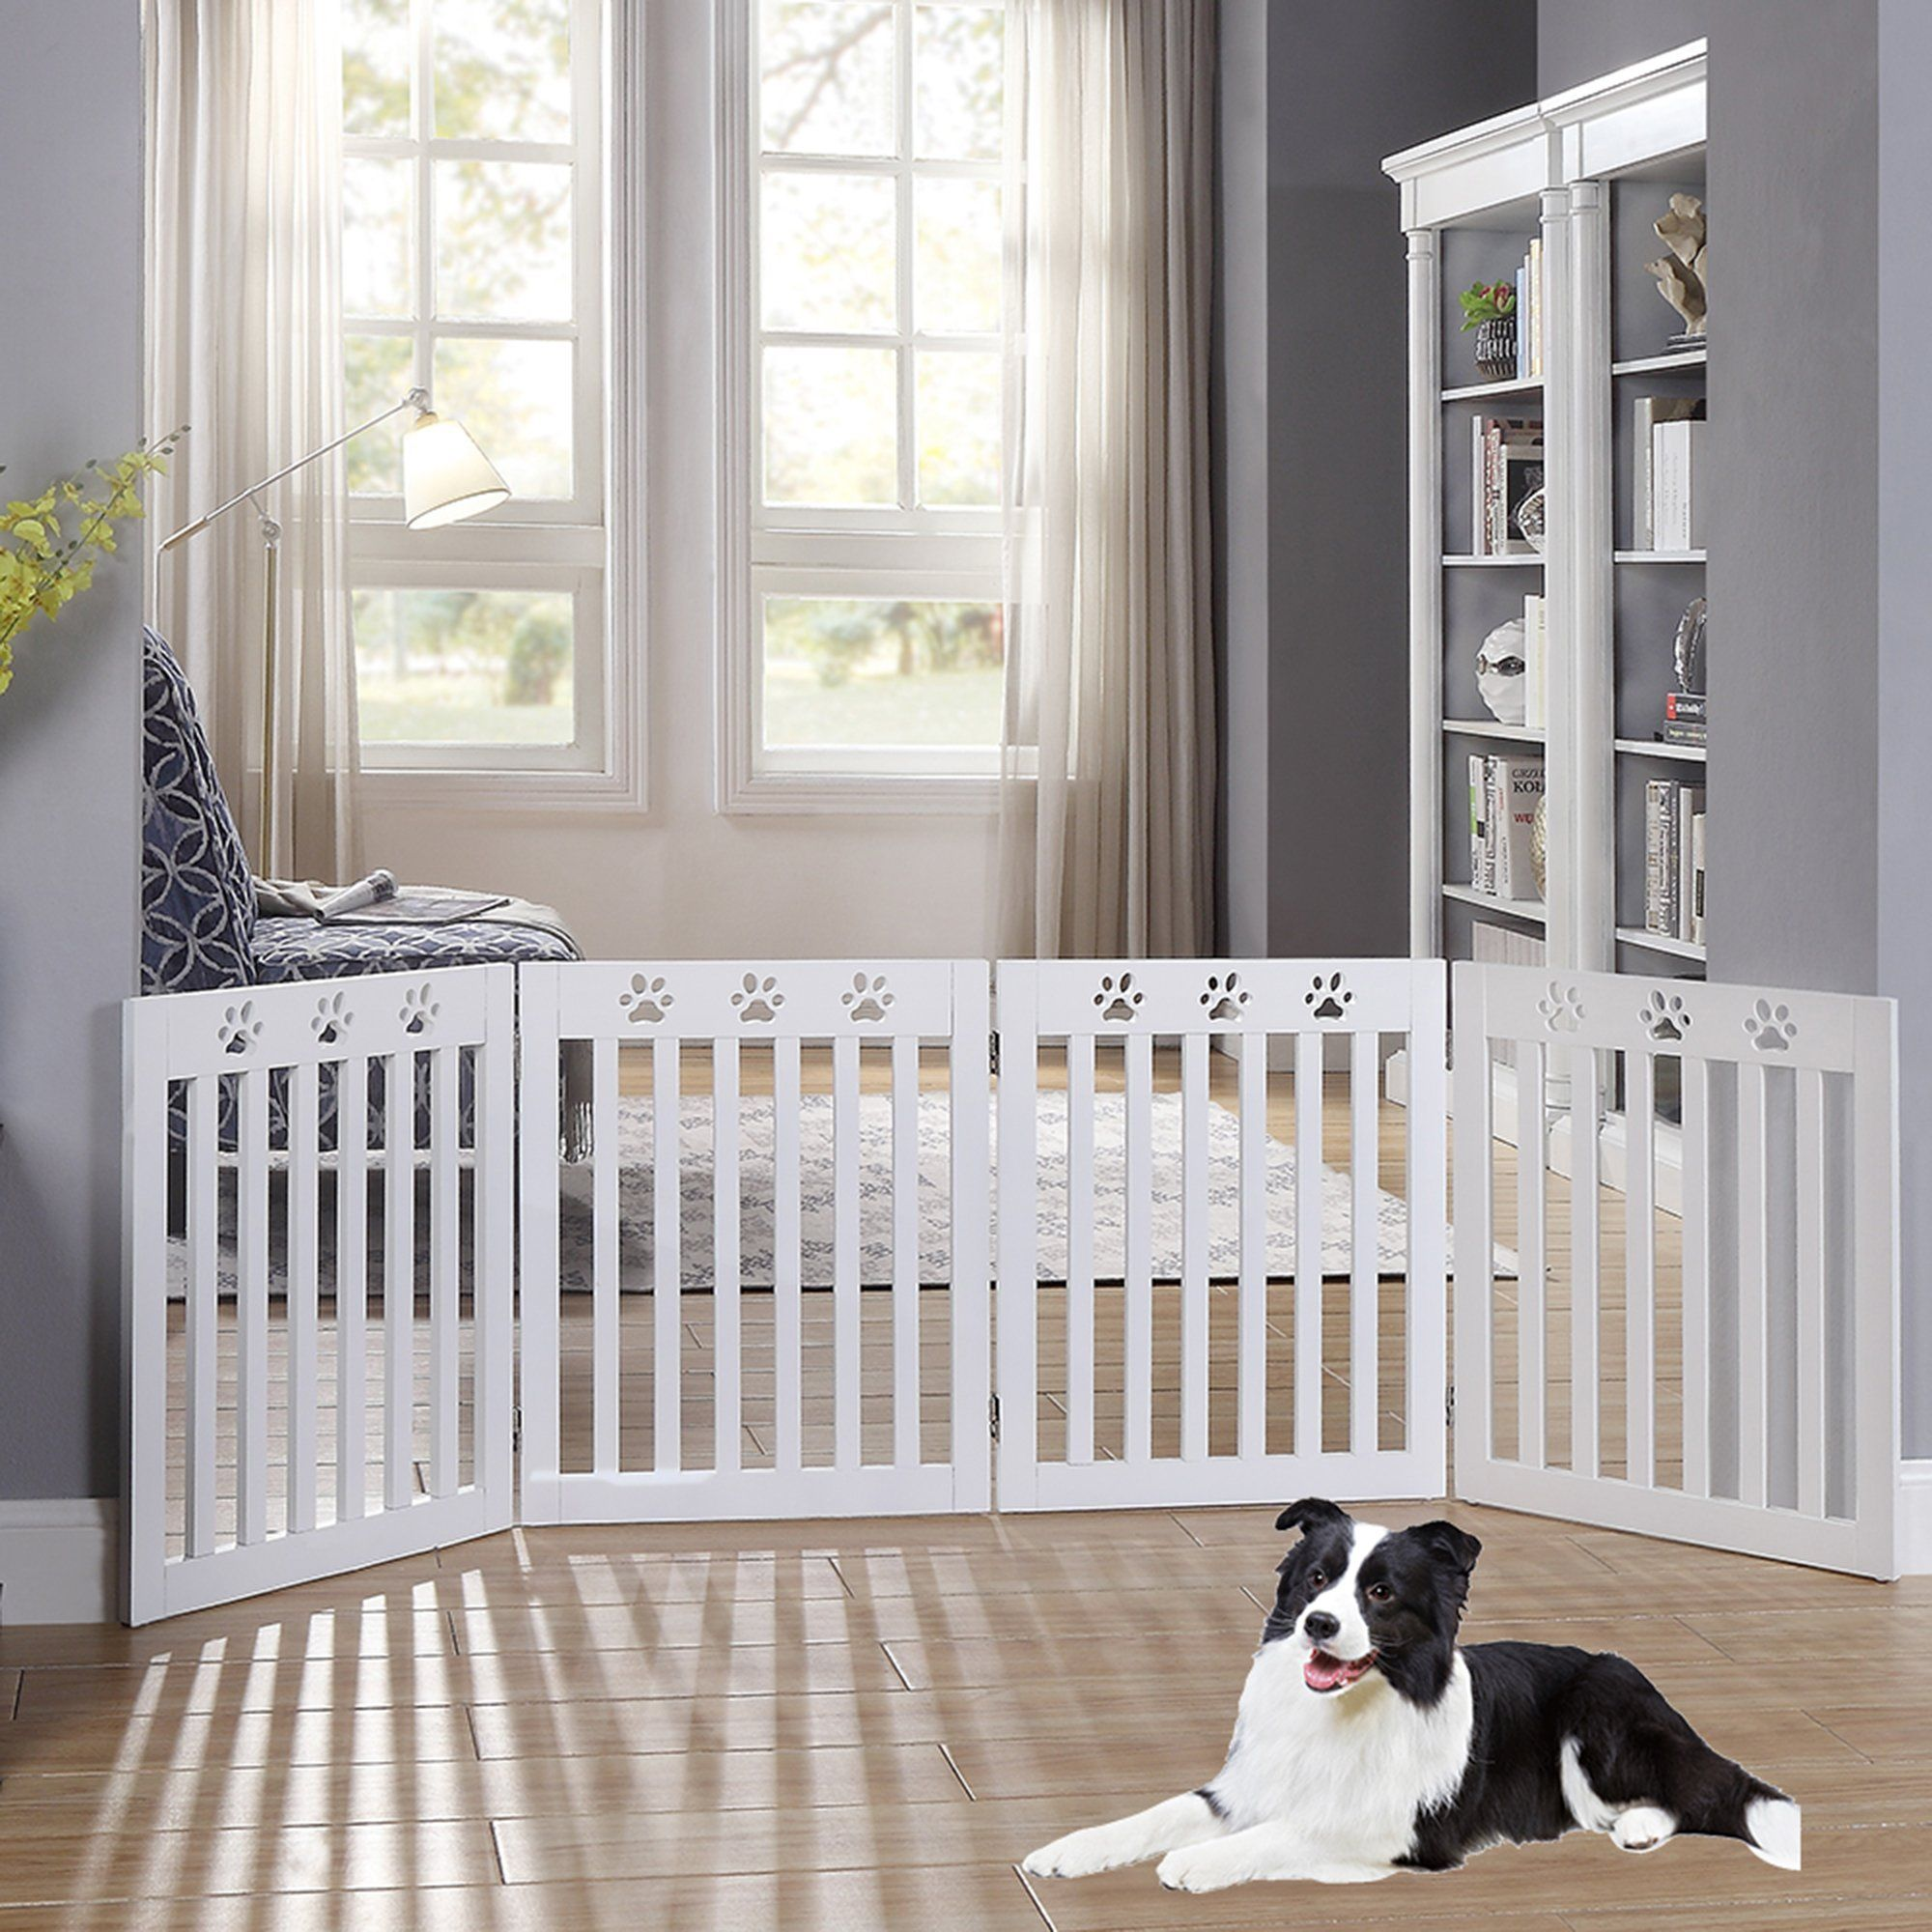 Unipaws Paw Deco 4 Panel Dog Gate White Assembly Free 20 80 W X